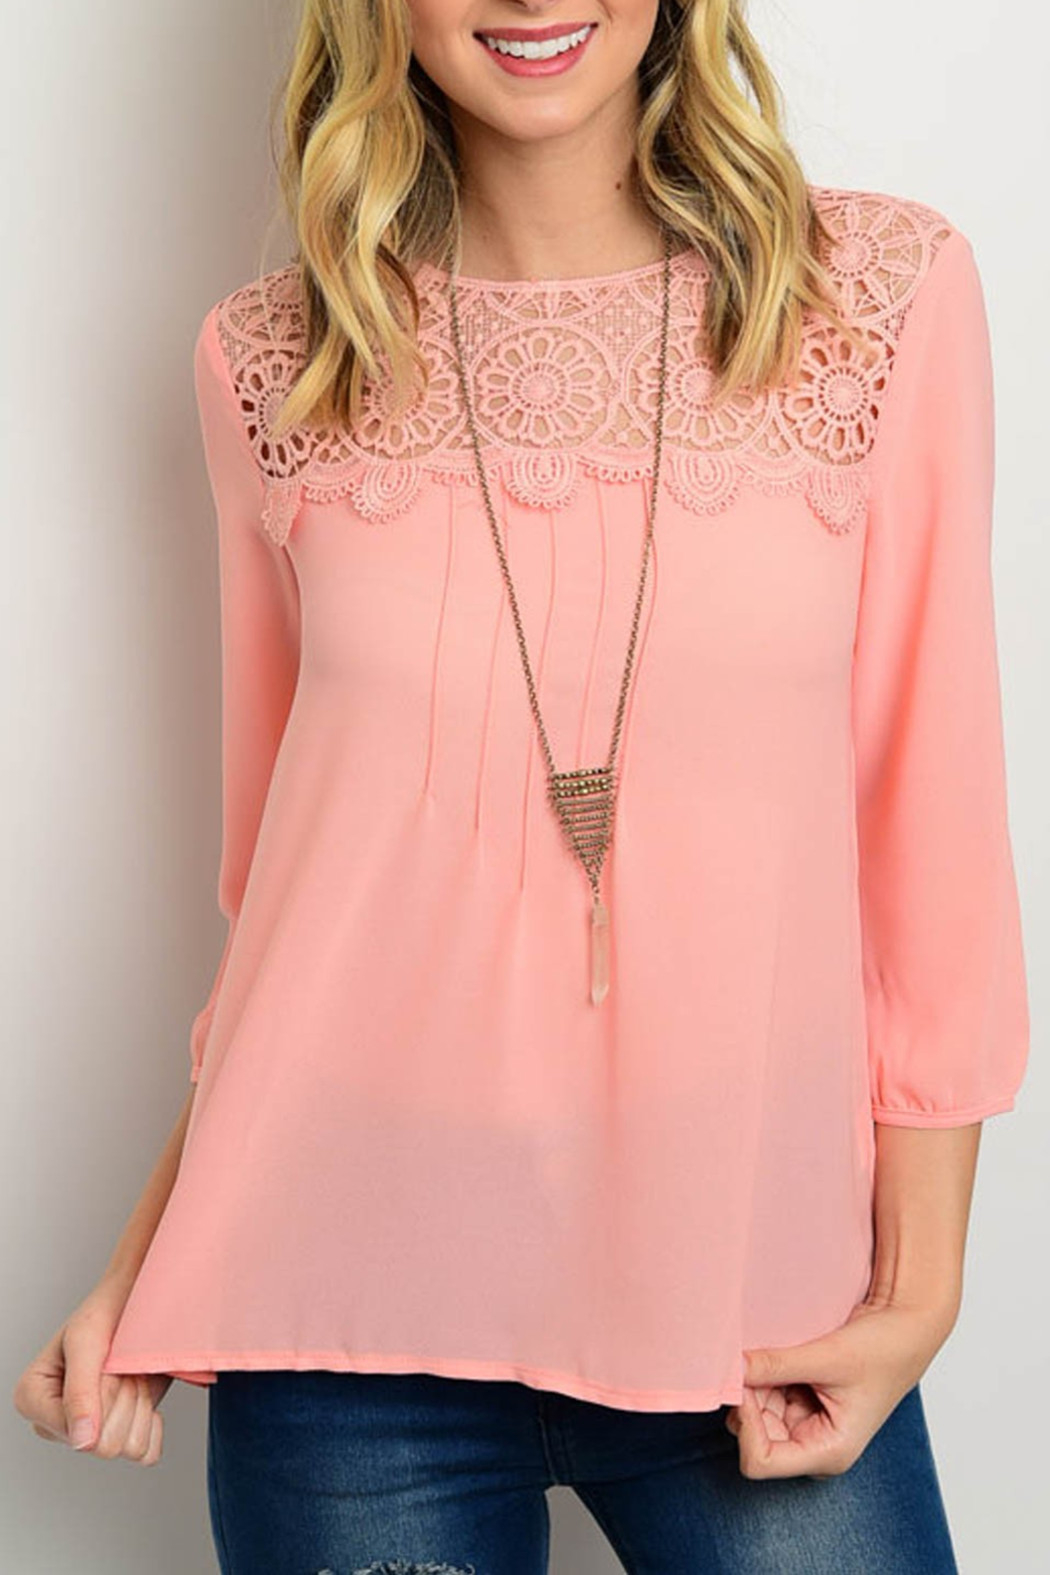 Roly Poly Salmon Crochet Blouse - Front Cropped Image